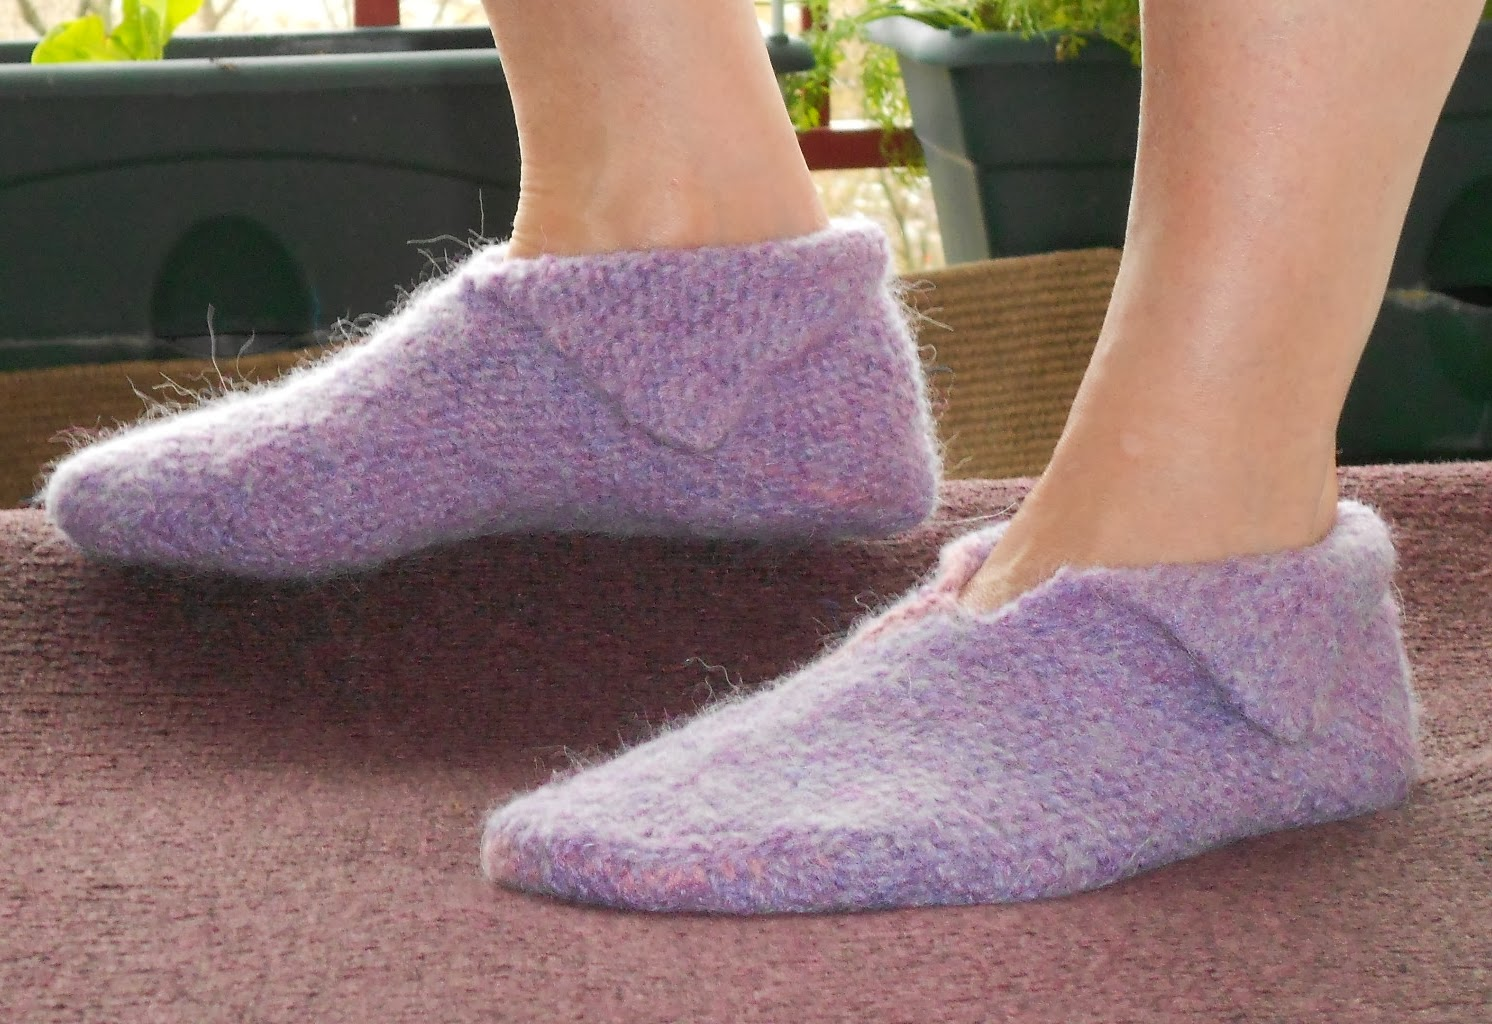 Knitting Pattern For Elf Slippers : Reah Janise Designs: FELTED ELF SLIPPERS